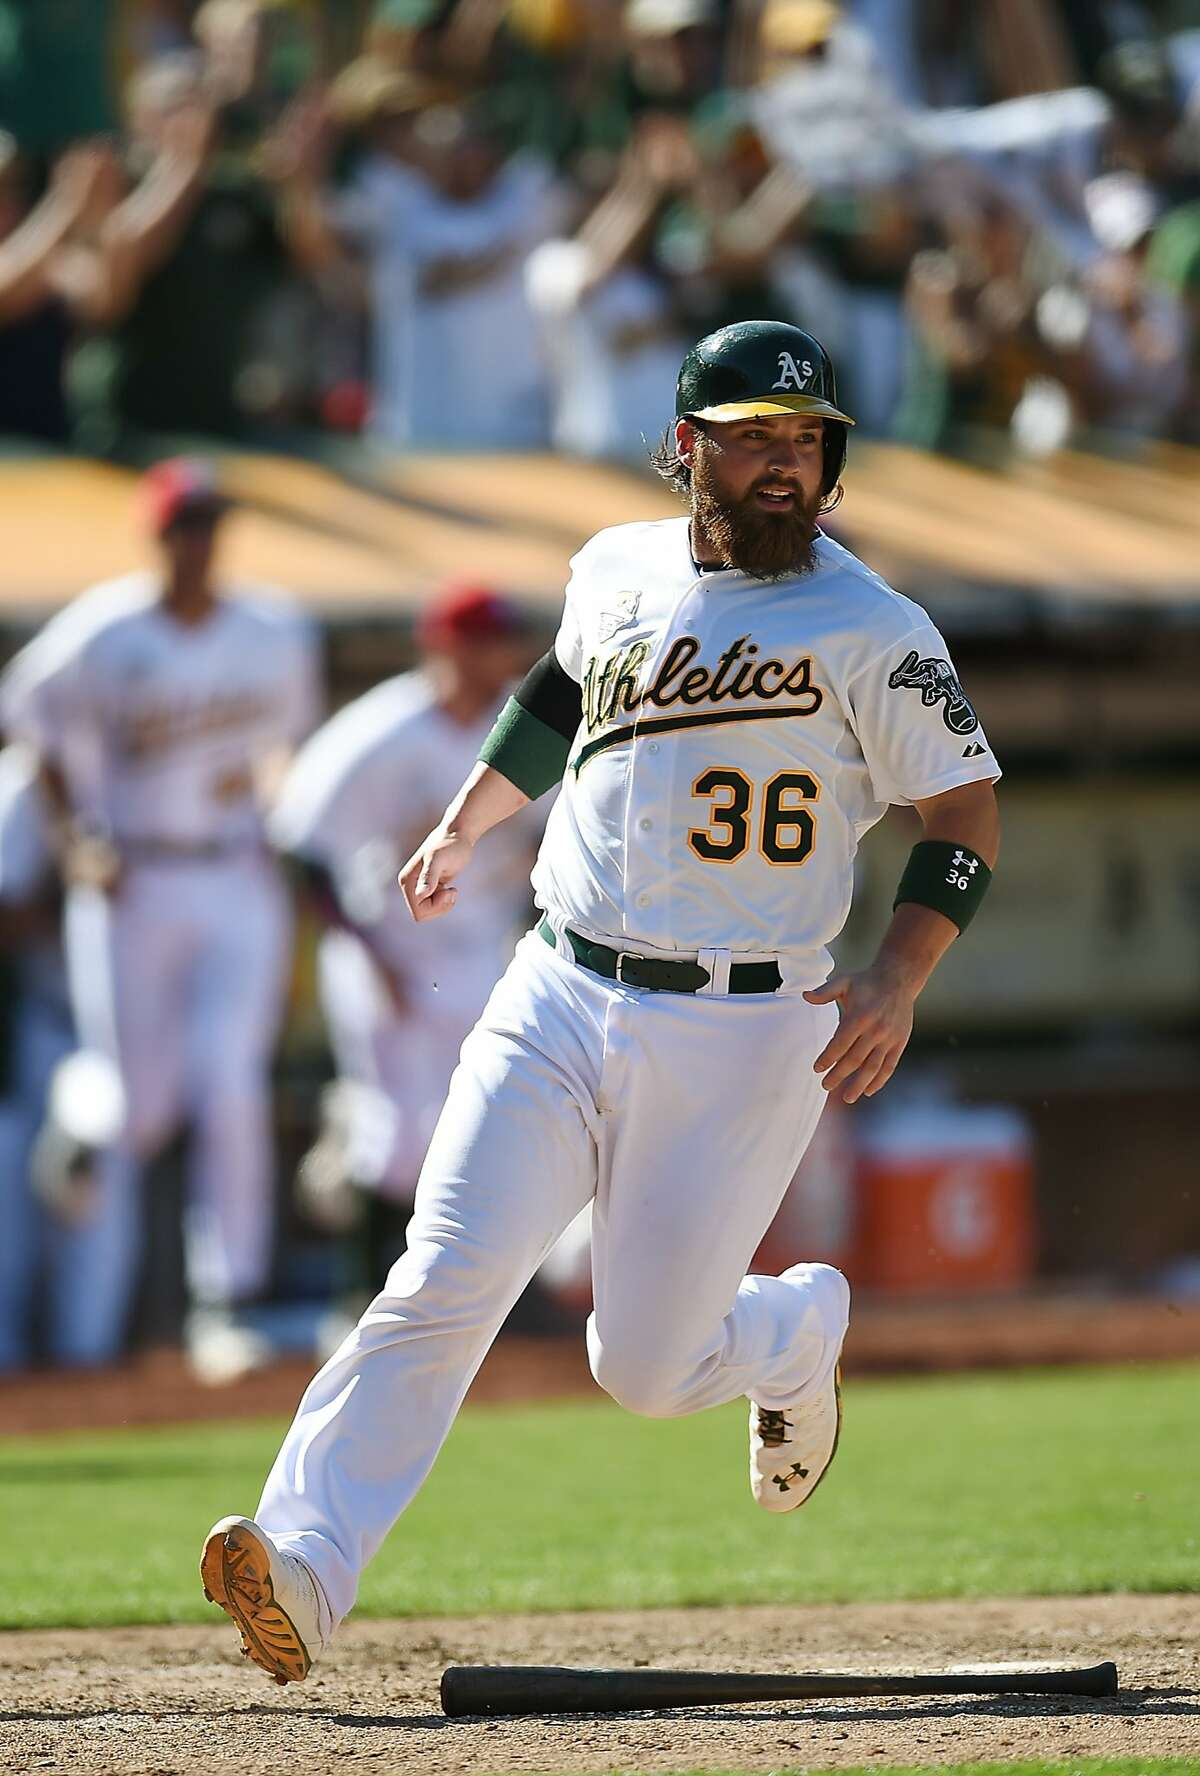 OAKLAND, CA - JULY 04: Derek Norris #36 of the Oakland Athletics scores the winning run in the bottom of the 12th inning against the Toronto Blue Jays at O.co Coliseum on July 4, 2014 in Oakland, California. Norris scored from first base on a walk-off rbi double from Nick Punto #1. (Photo by Thearon W. Henderson/Getty Images)